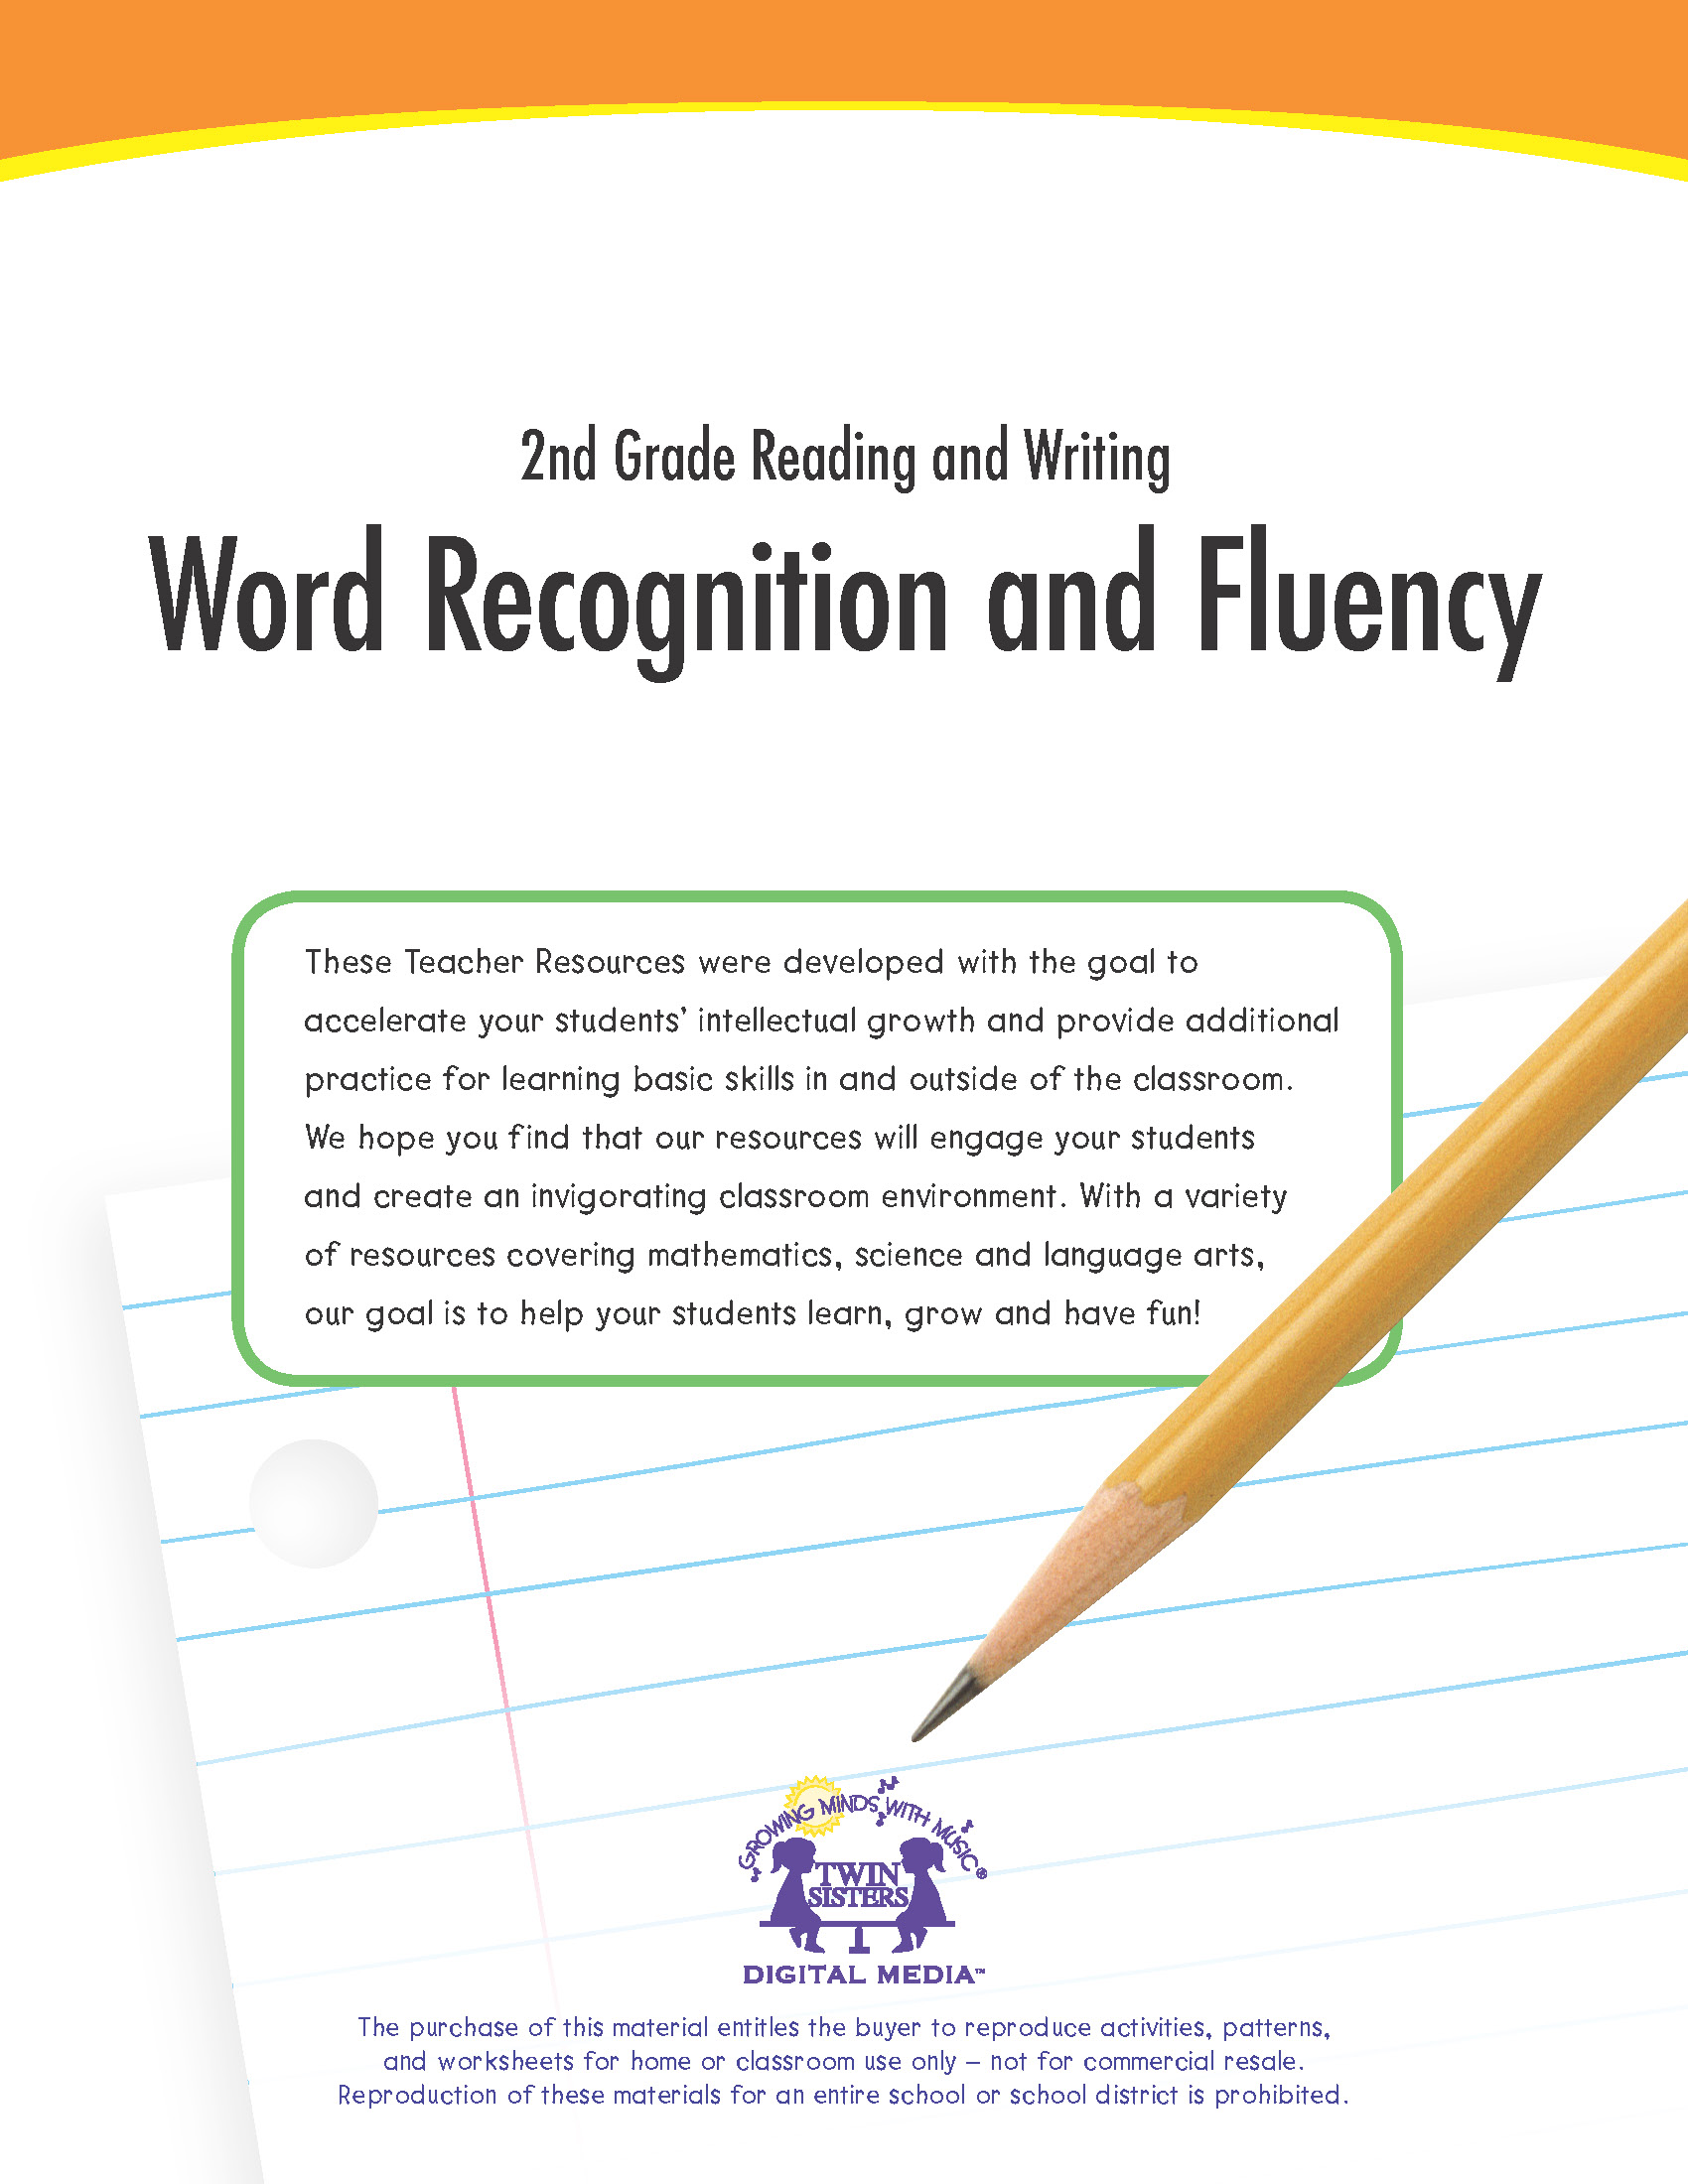 2nd Grade Reading And Writing Word Recognition And